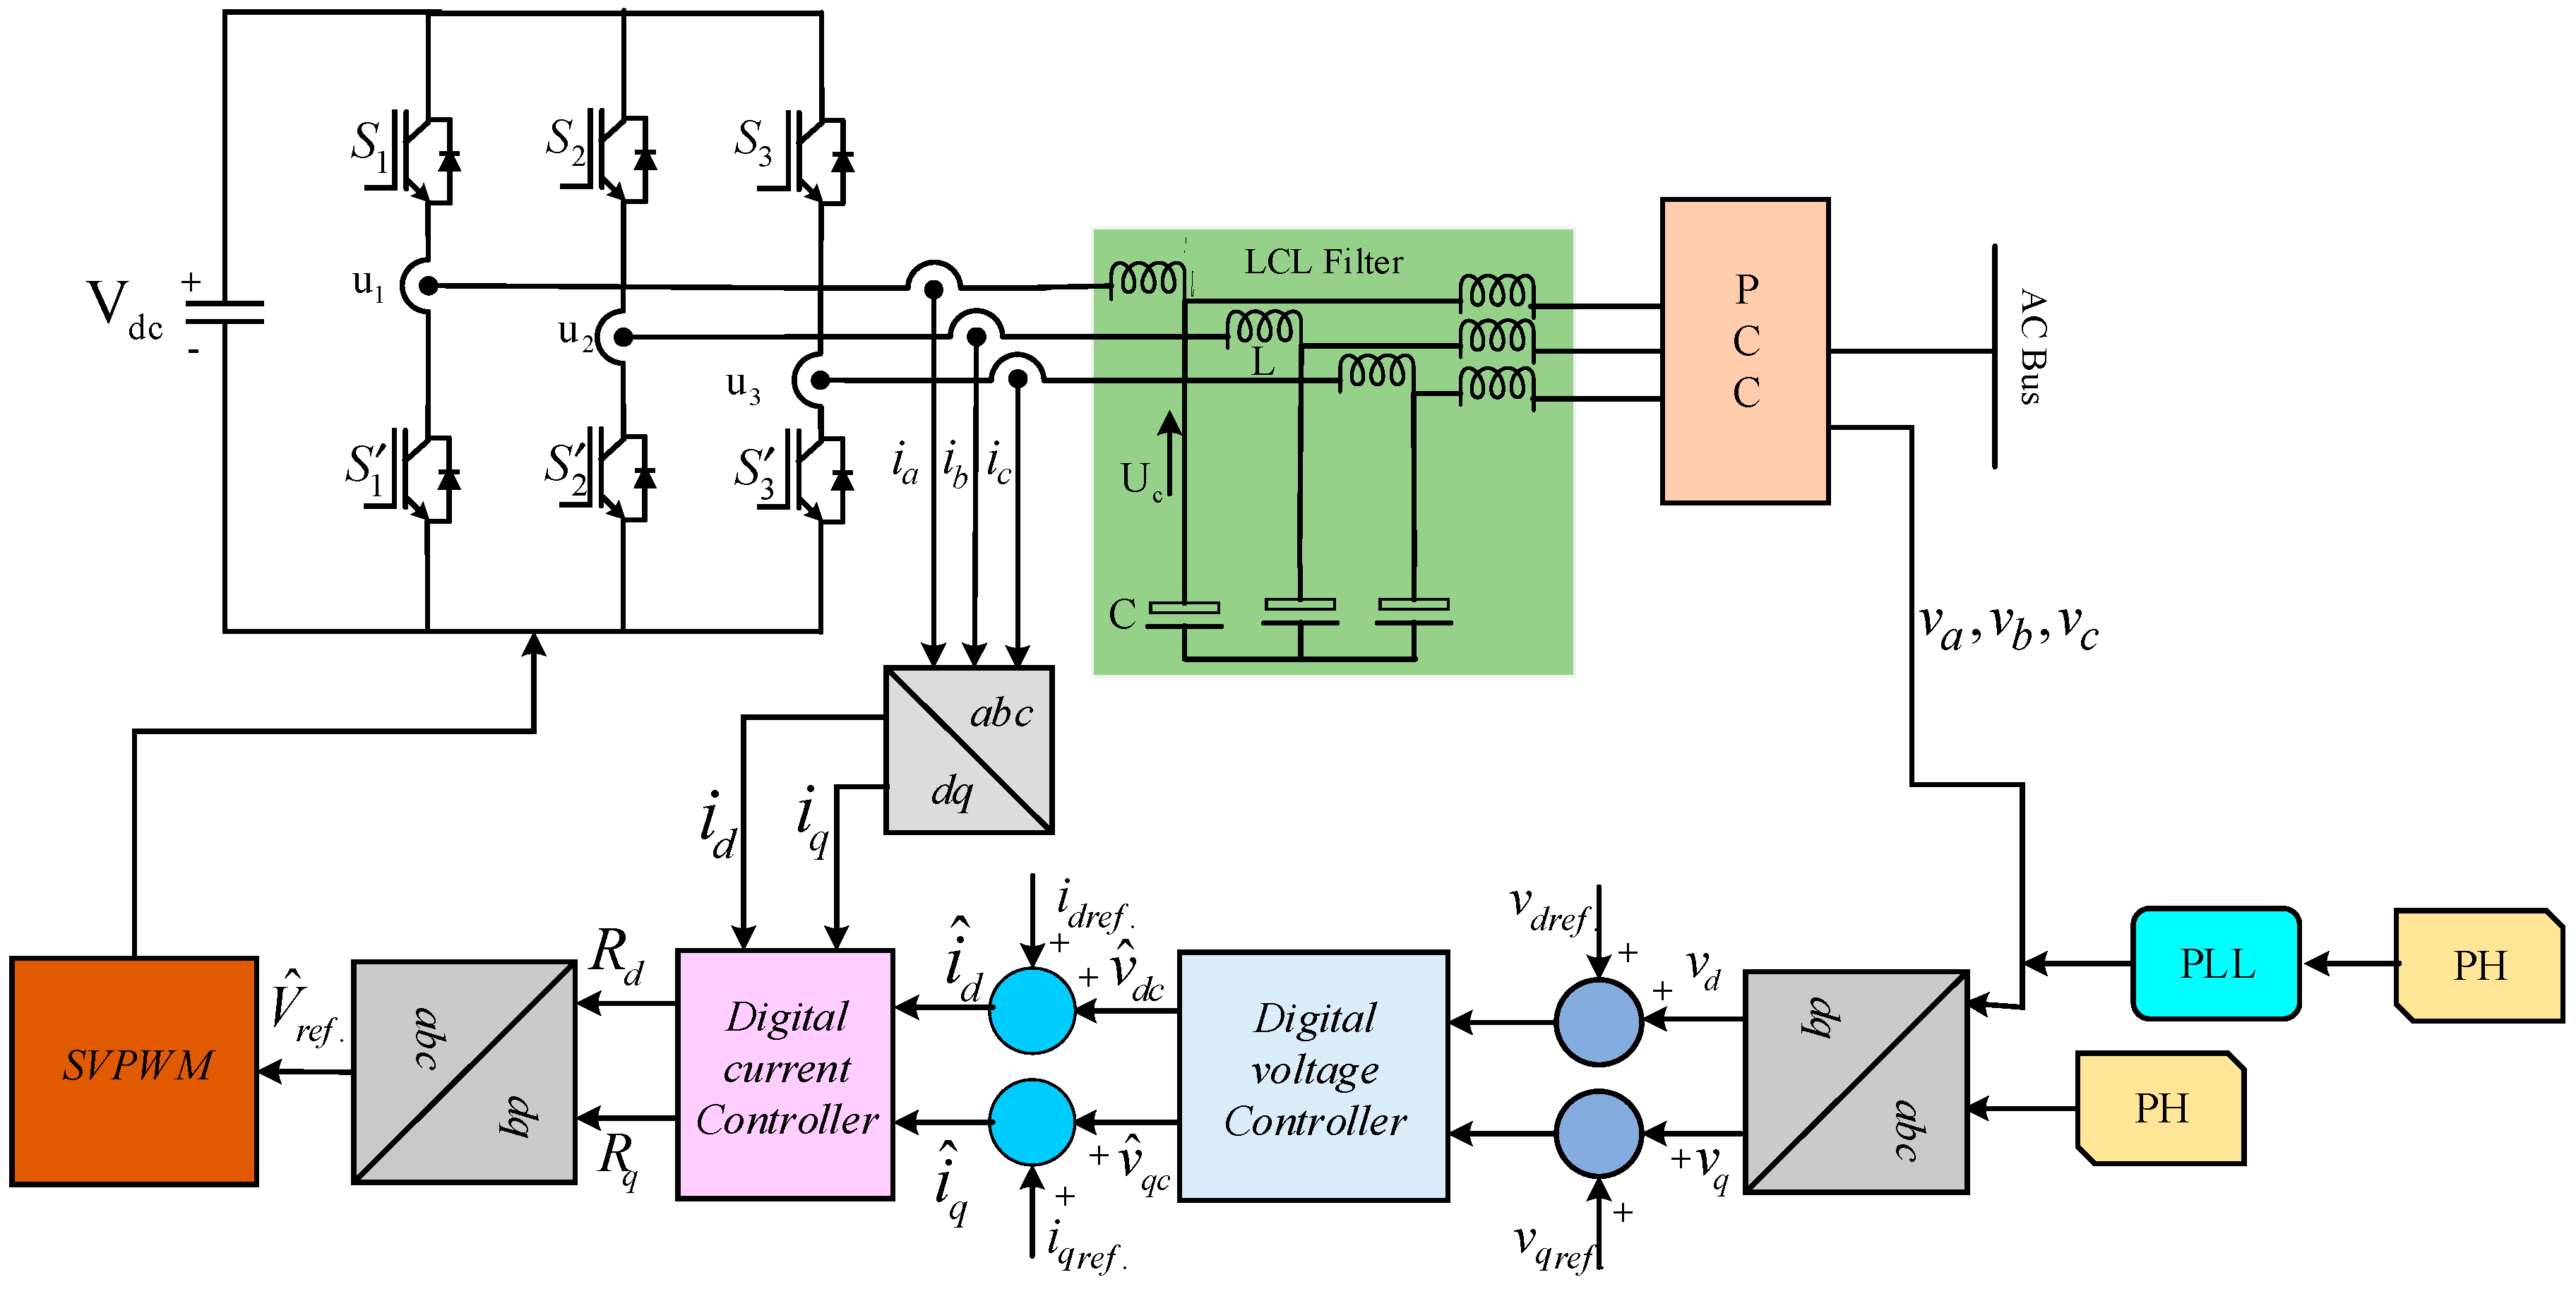 Electronics Free Full Text Digital Control Techniques Based On Discrete Pwm Generator Circuit 07 00018 G010